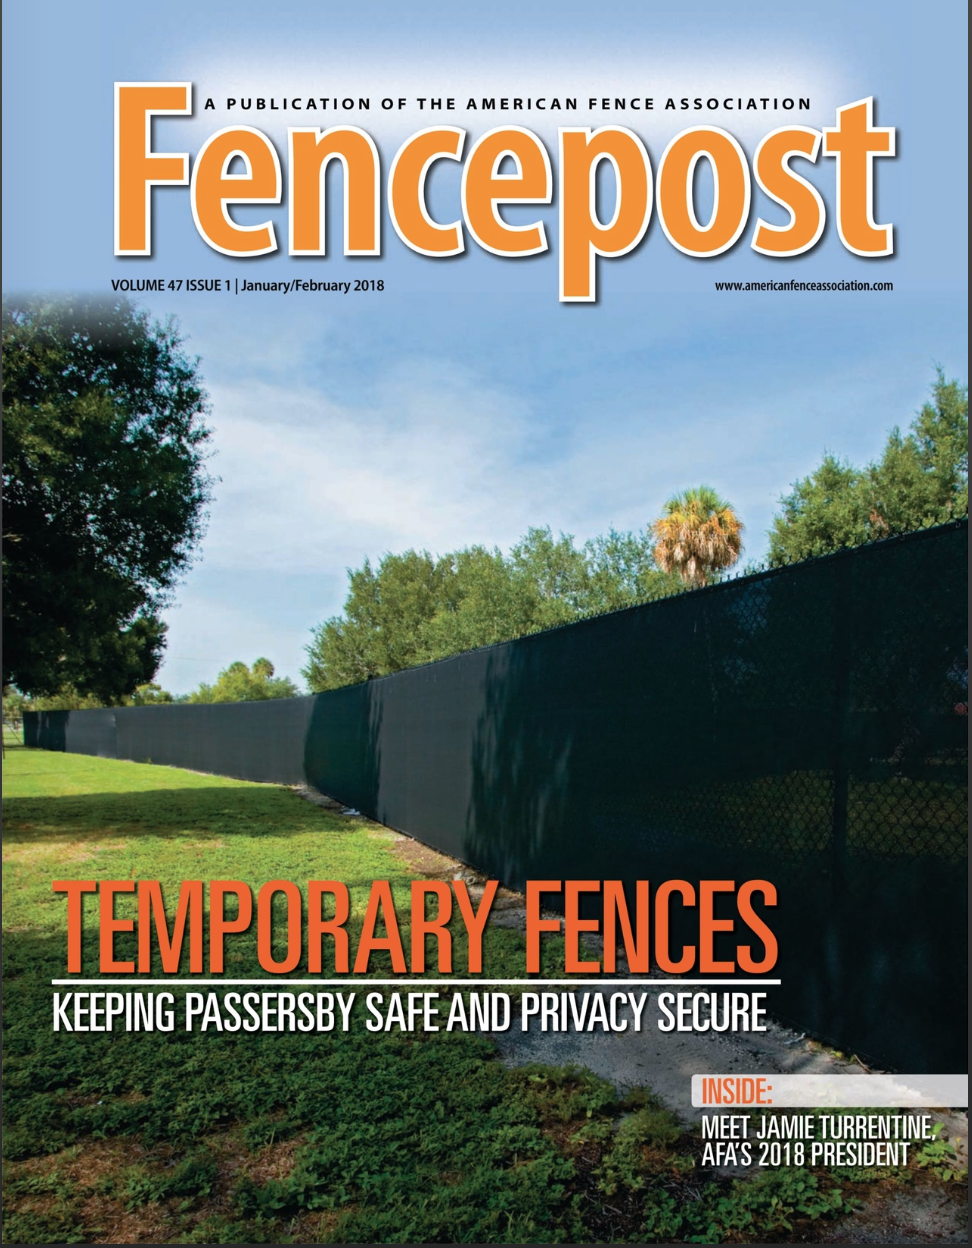 From donkeys to fences: Six specialist magazines you won't